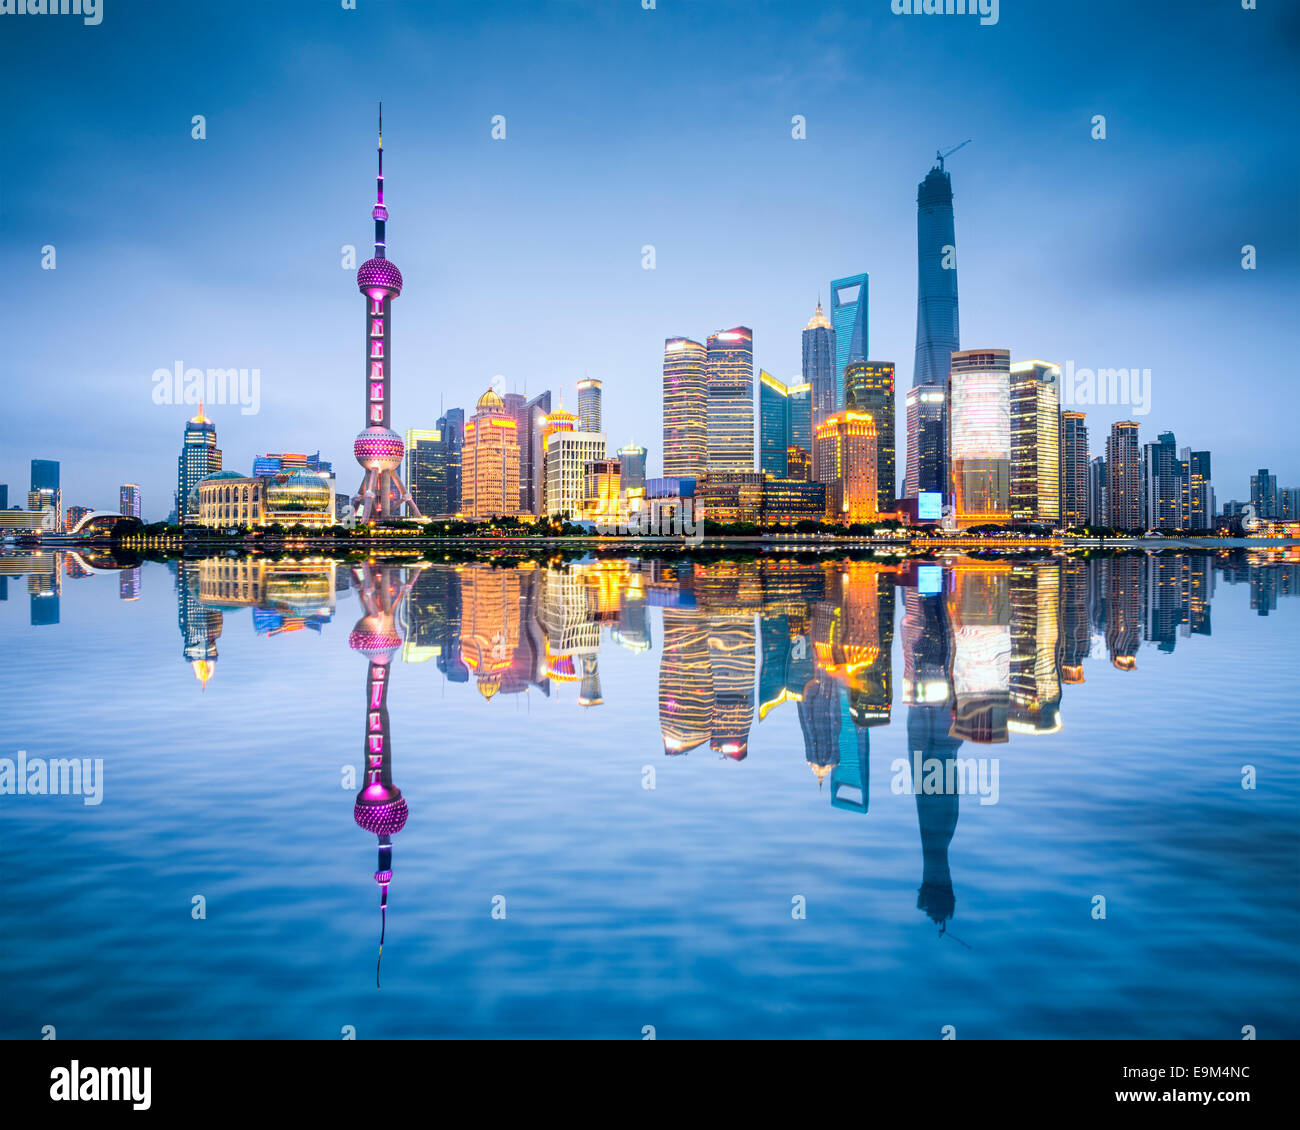 Shanghai, China city skyline of the Pudong District. - Stock Image